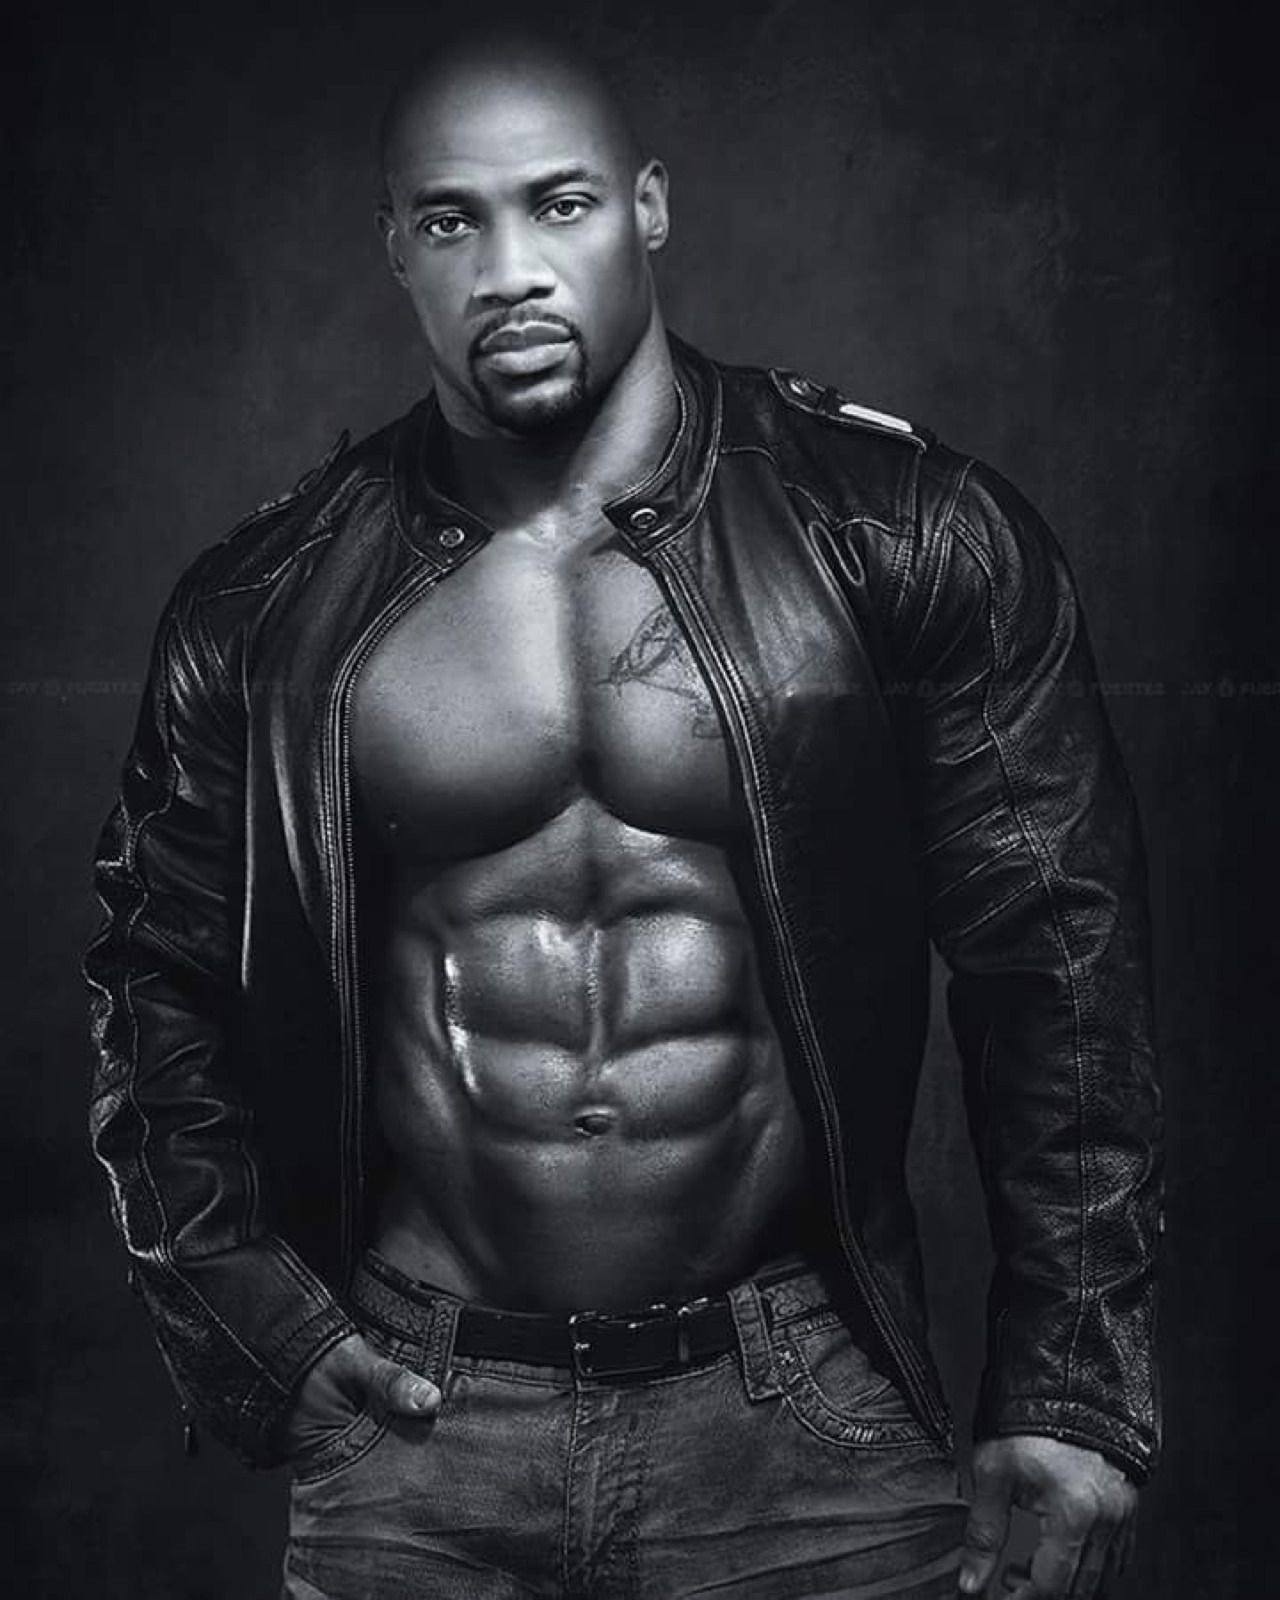 Pictures of sexy black men just because it's friday